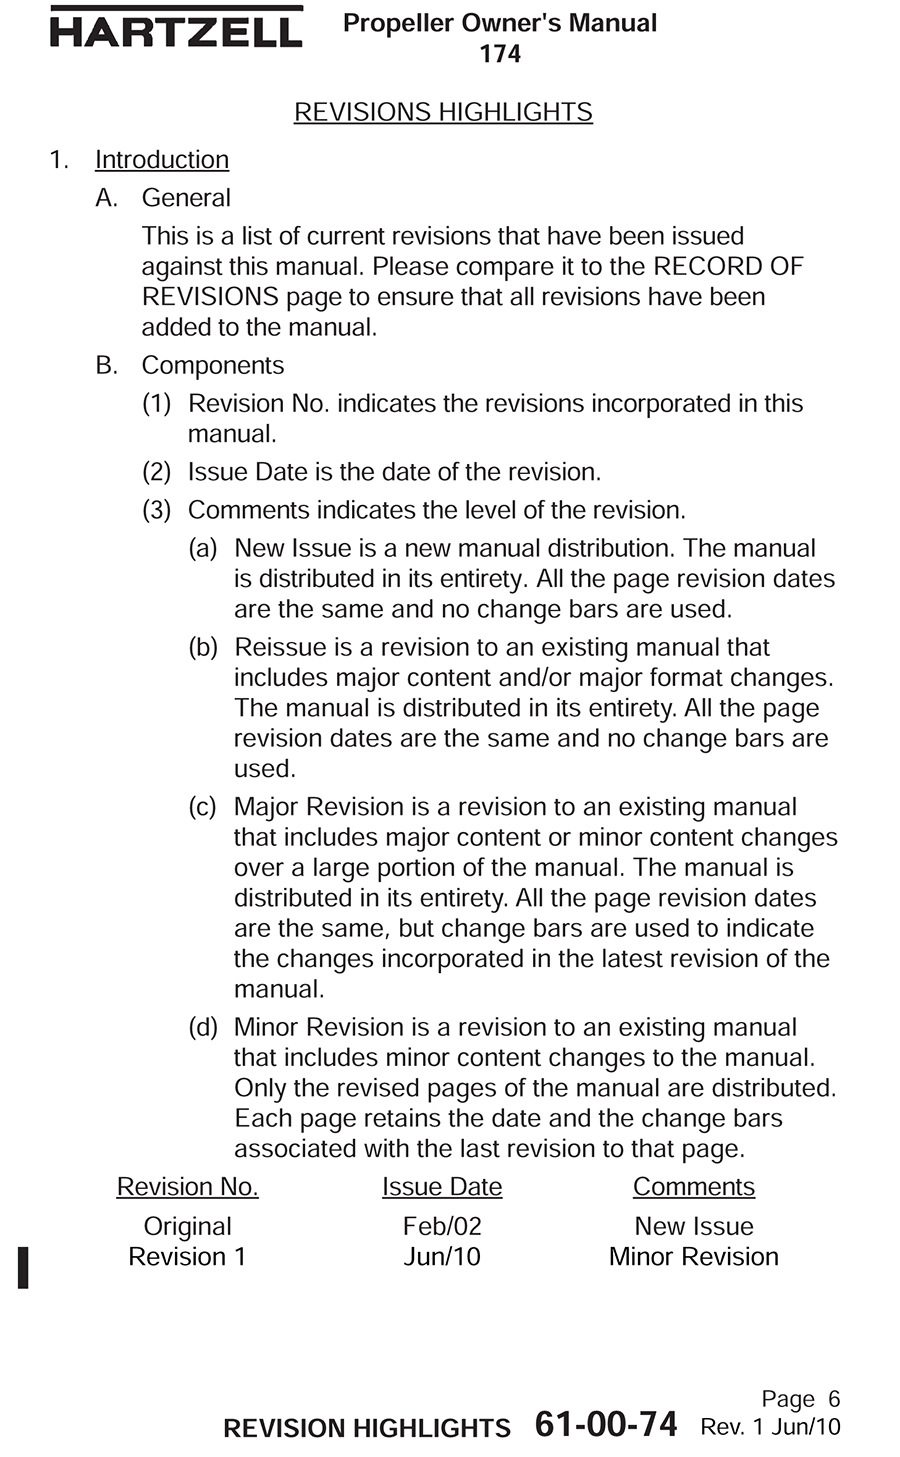 Hartzell Prop Manual 2010 page8